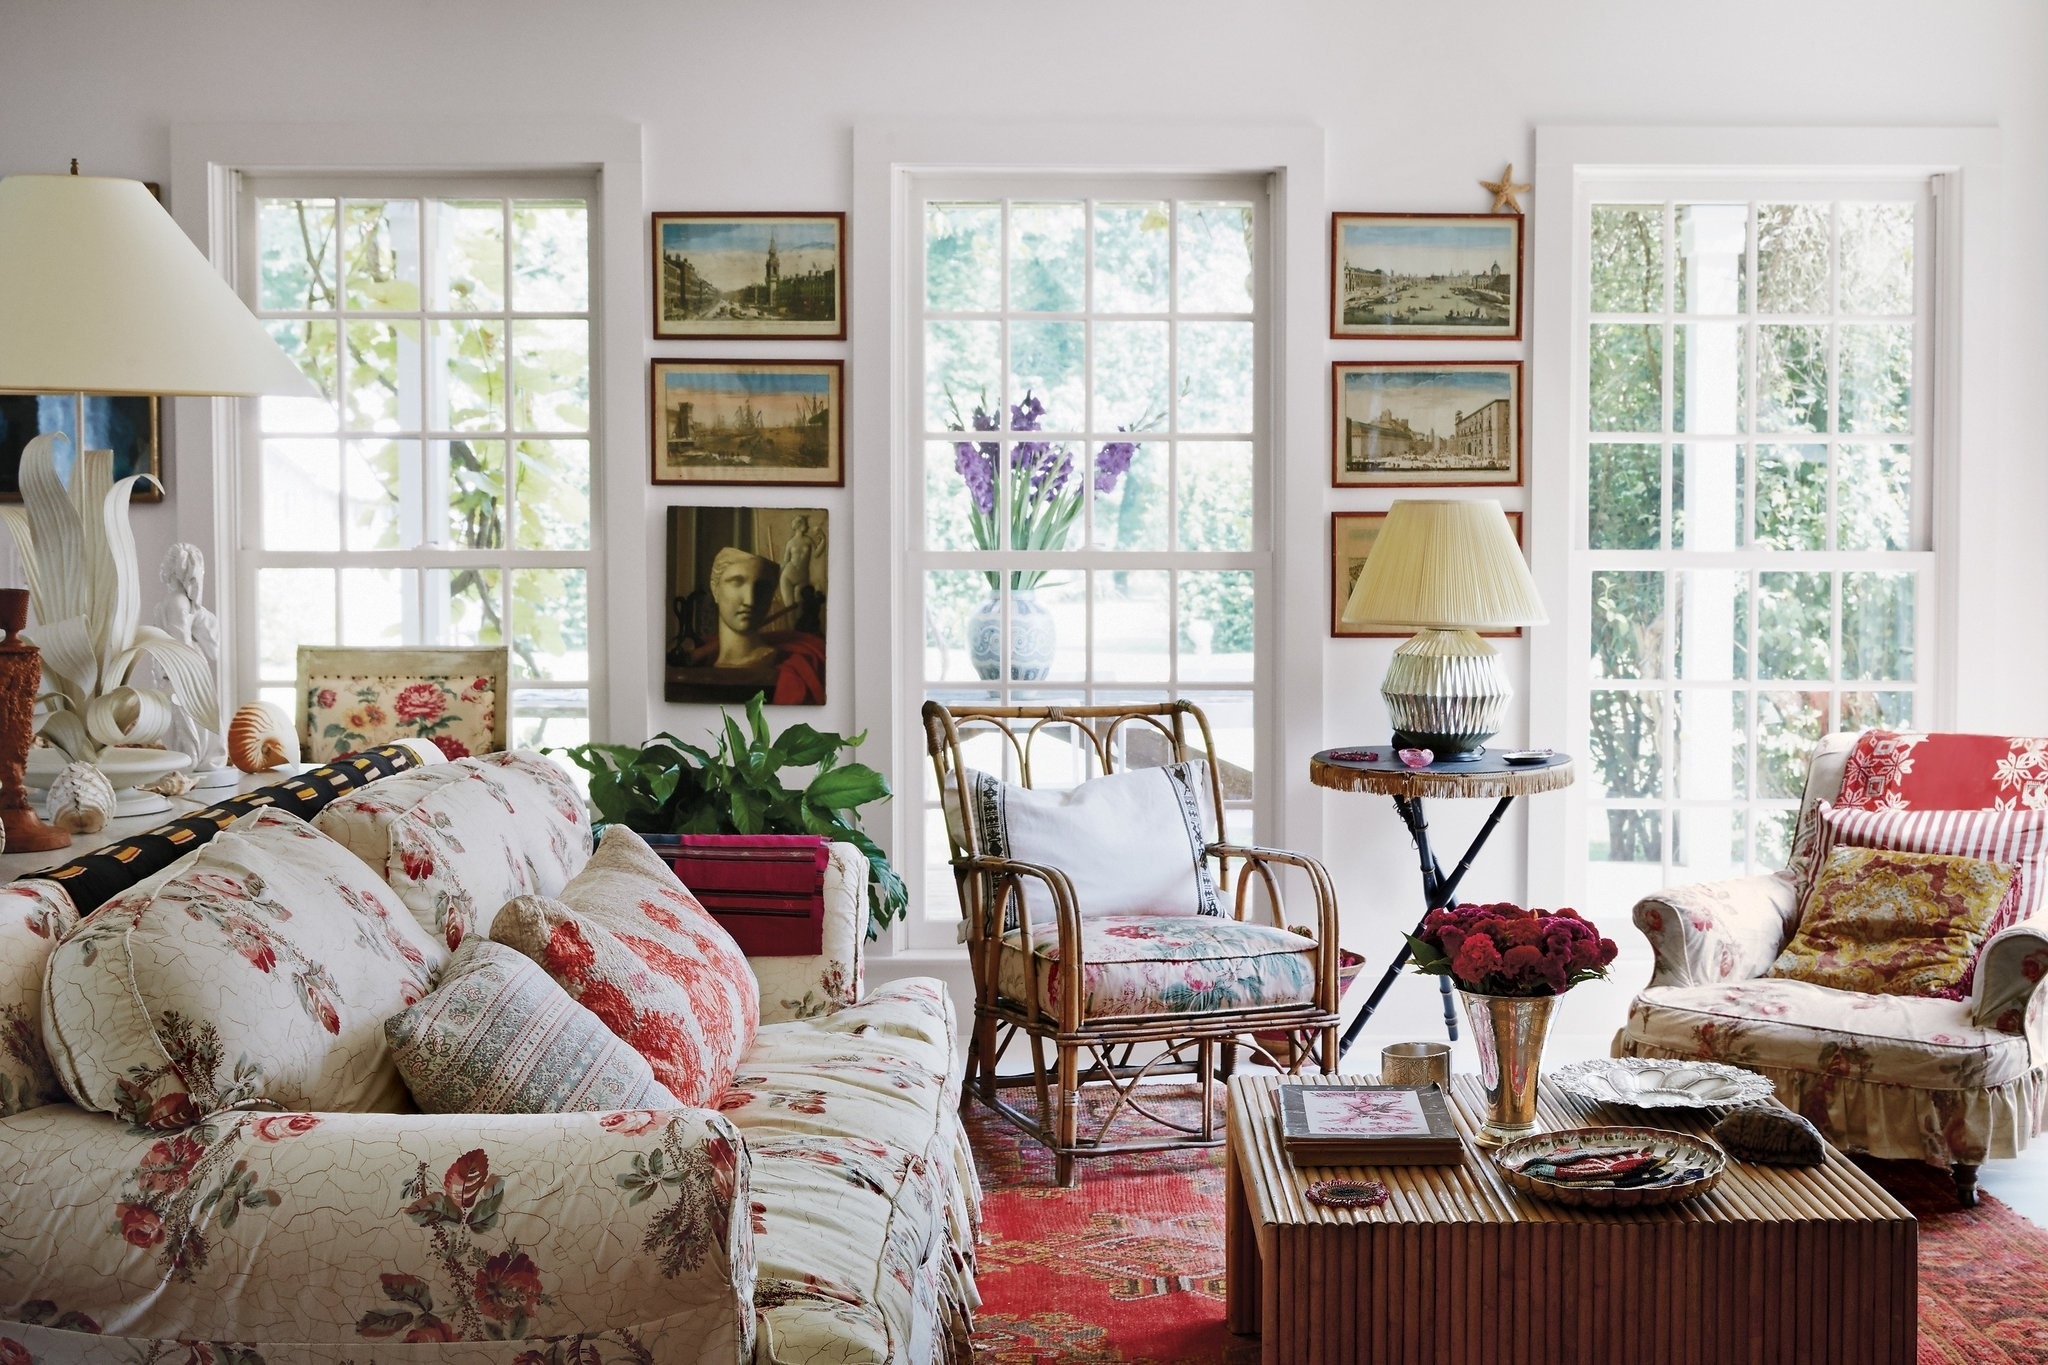 Exquisite Pleasures – The Living Room, With A Sofa And Armchairs Within Popular Chintz Sofas (Gallery 5 of 20)